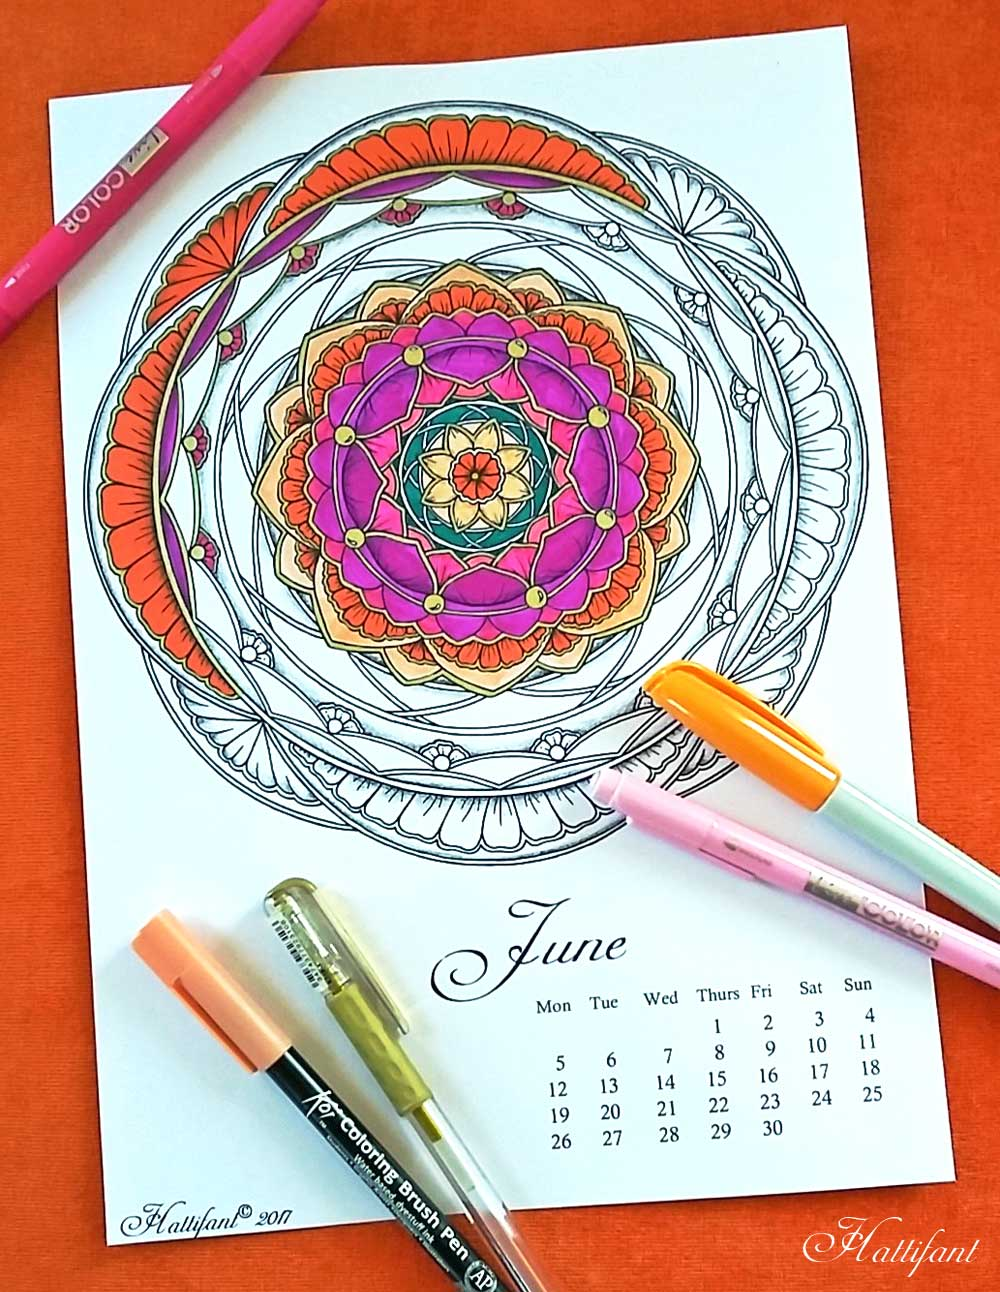 Hattifant's Mandalandar 2017 a Mandala Calendar Coloring Page for May to download for free during June